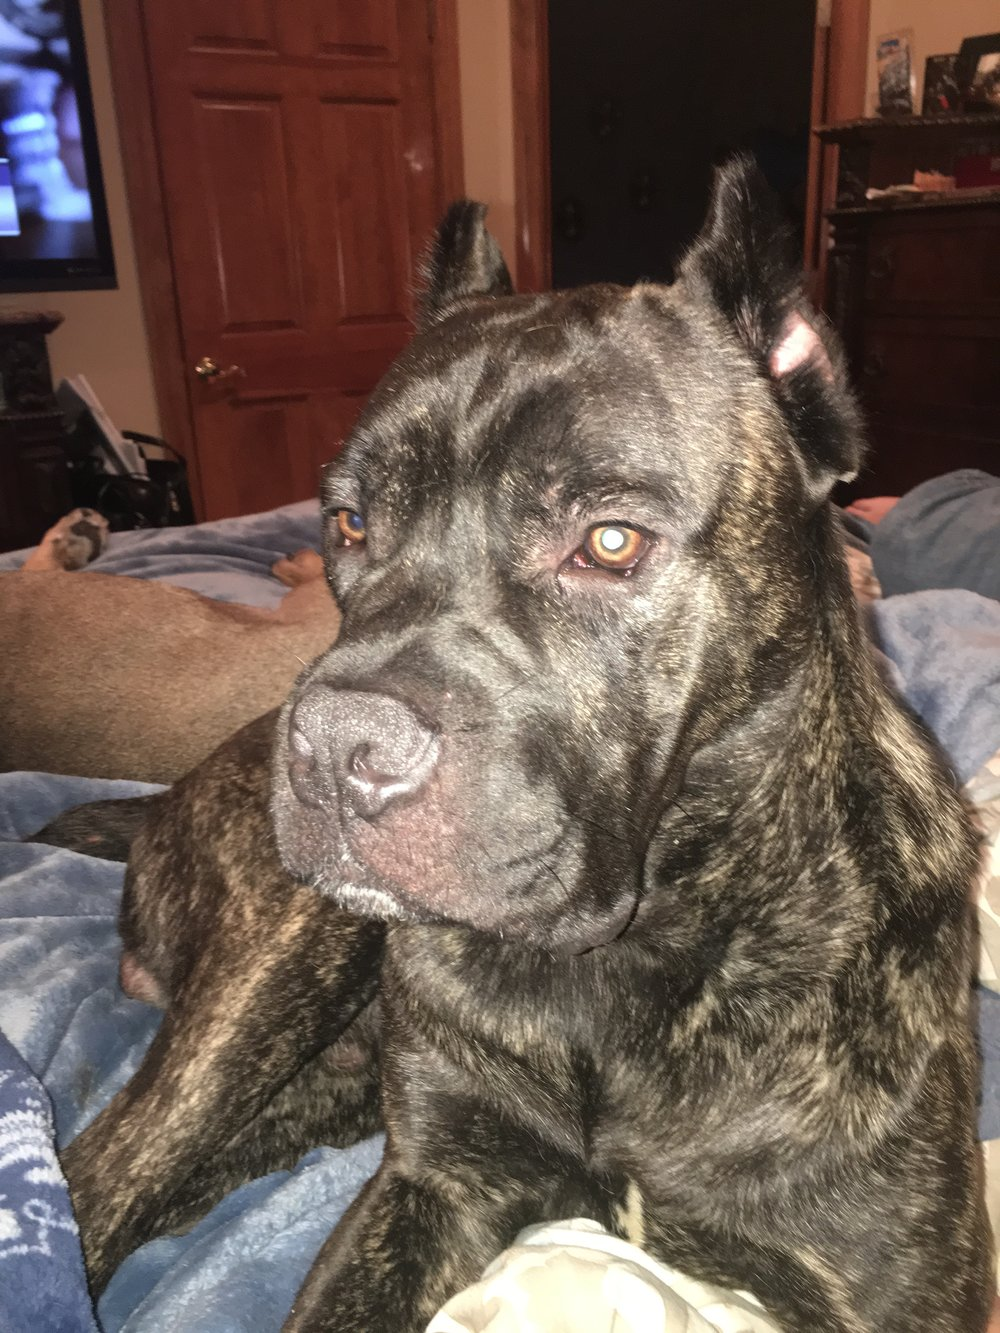 Coopertini-   Male  2 1/2 years old  Cane Corso  Black Brindle  Neutered  Up to date on shots  Playful, great with female dogs, and sweet